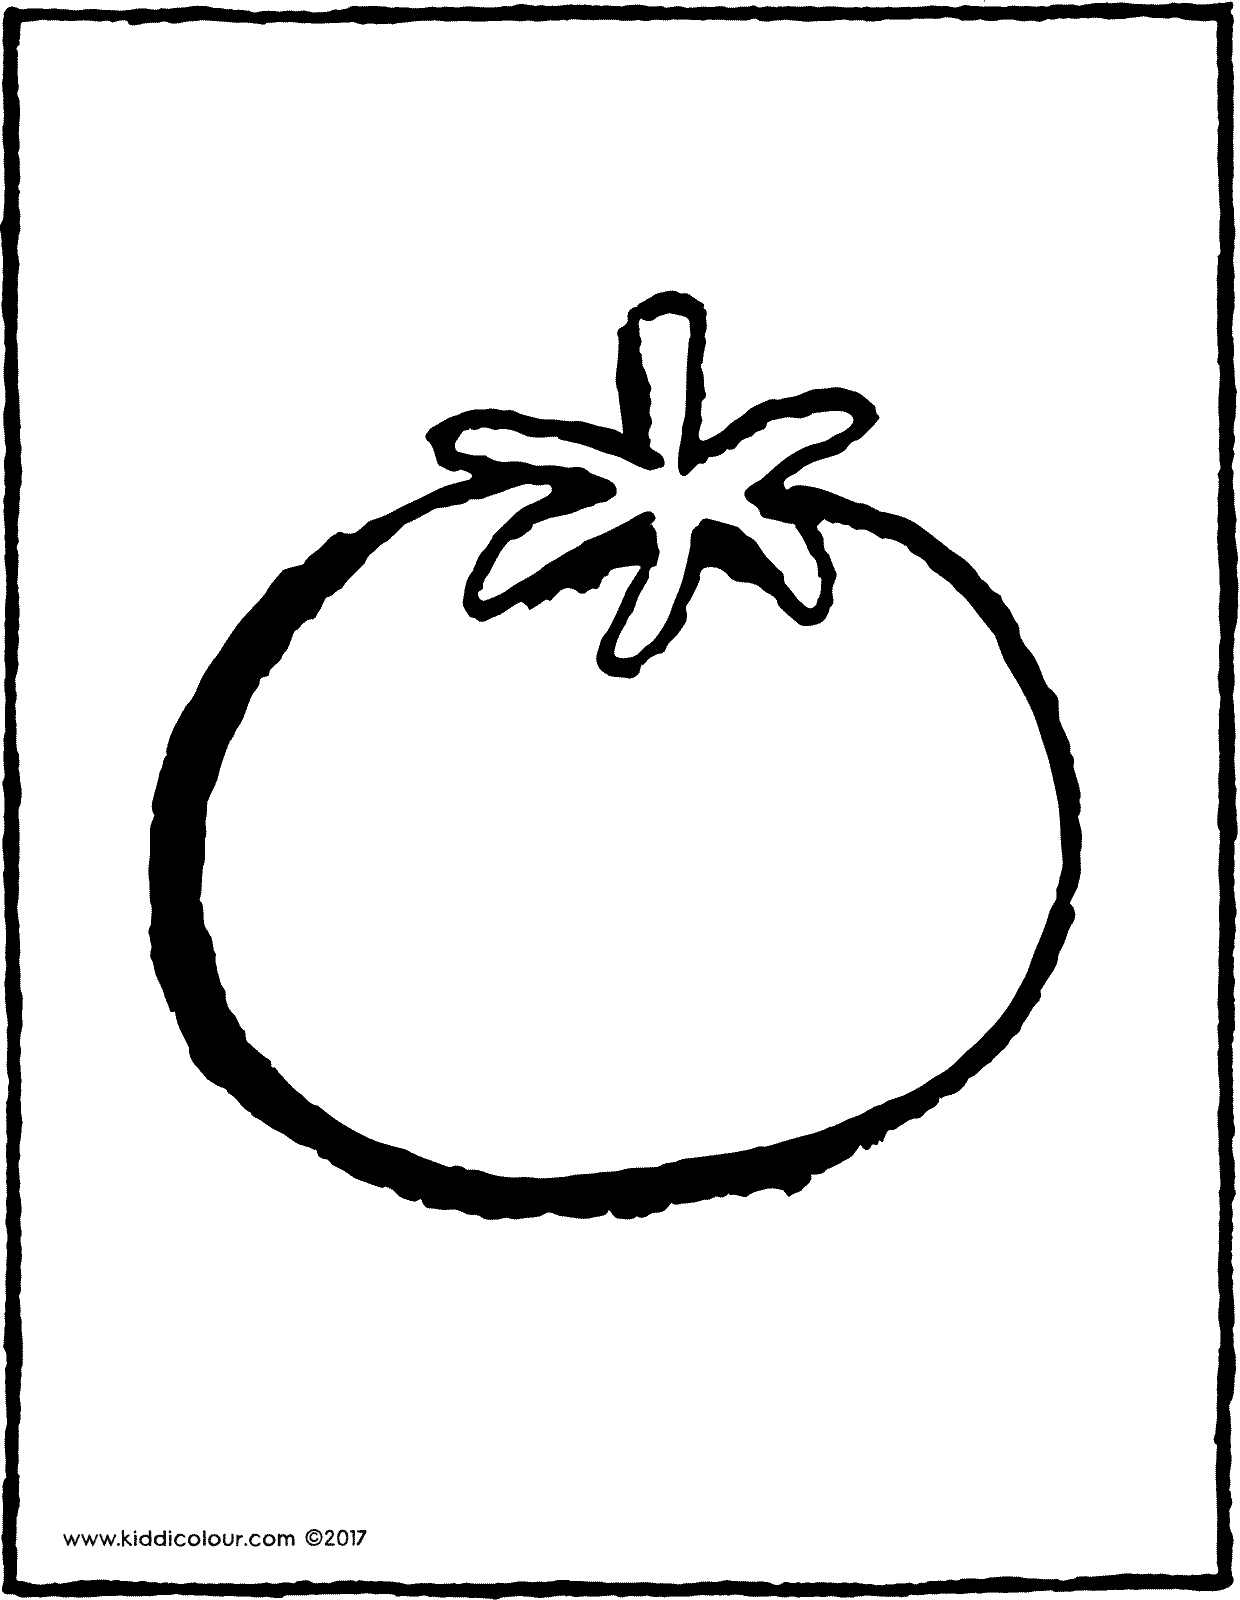 coloring tomato outline tomato drawing pictures at getdrawings free download outline tomato coloring